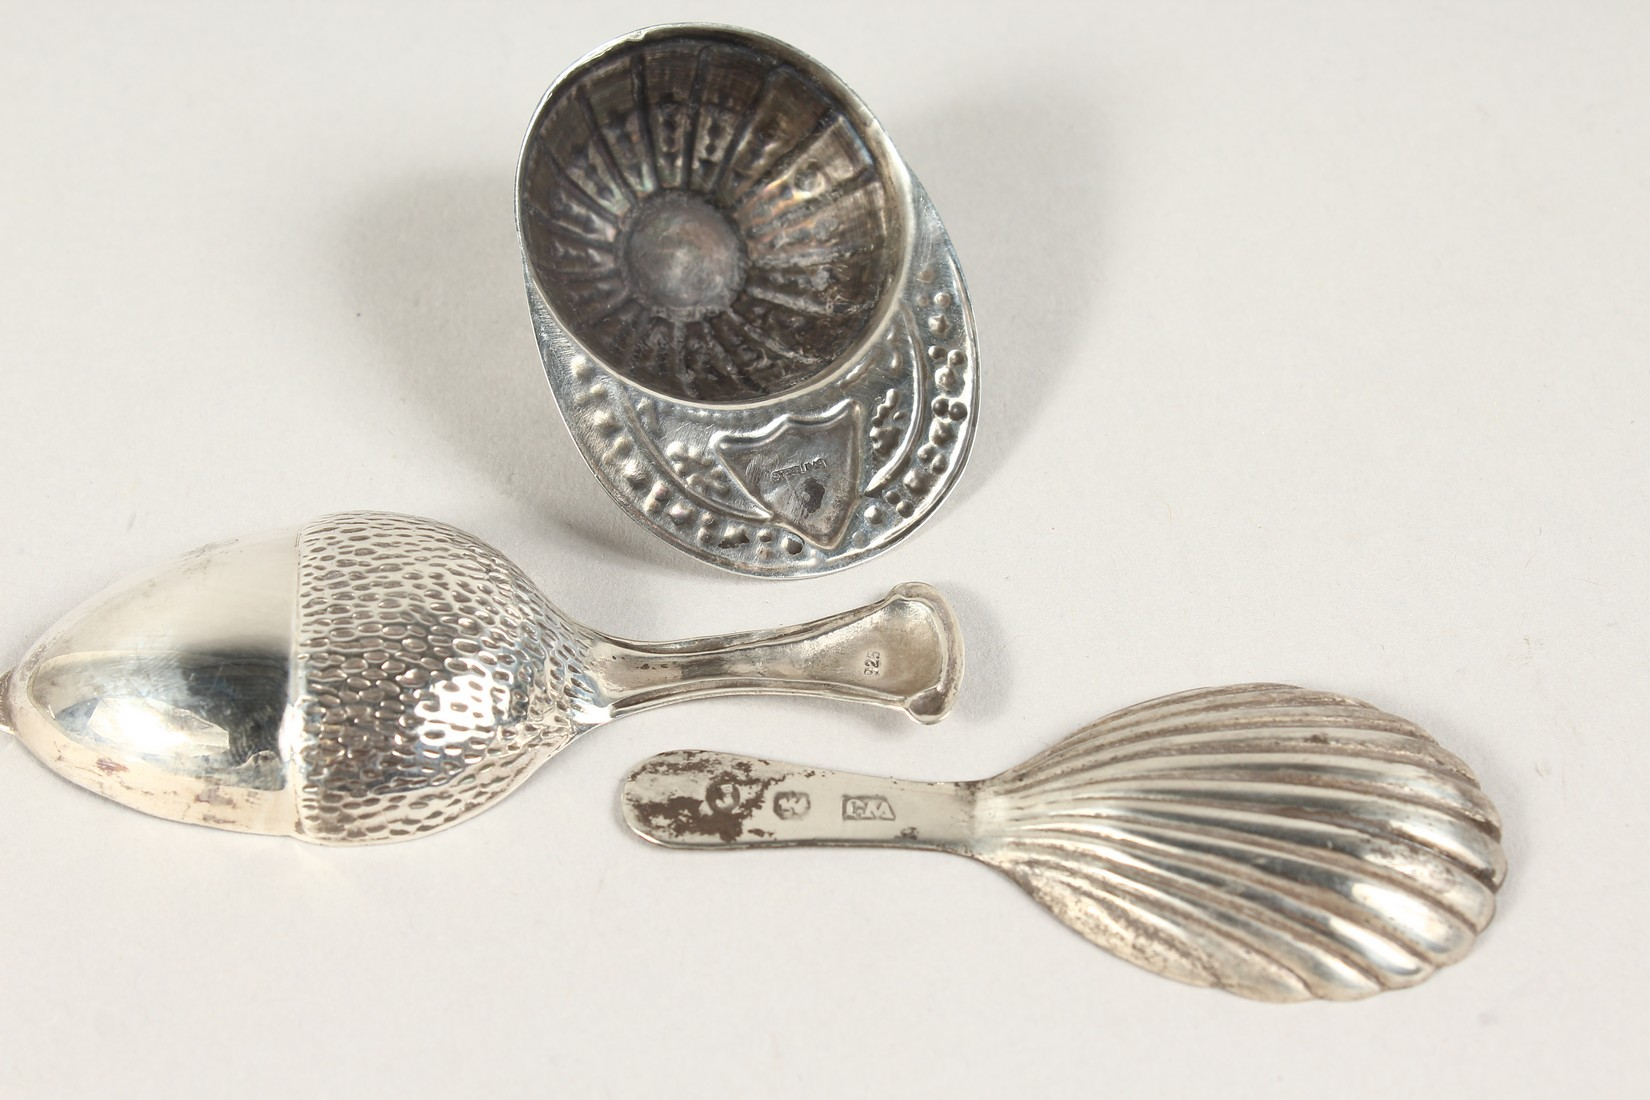 TWO SILVER CADDY SPOONS, JOCKEY CAP AND ACORN. - Image 2 of 2